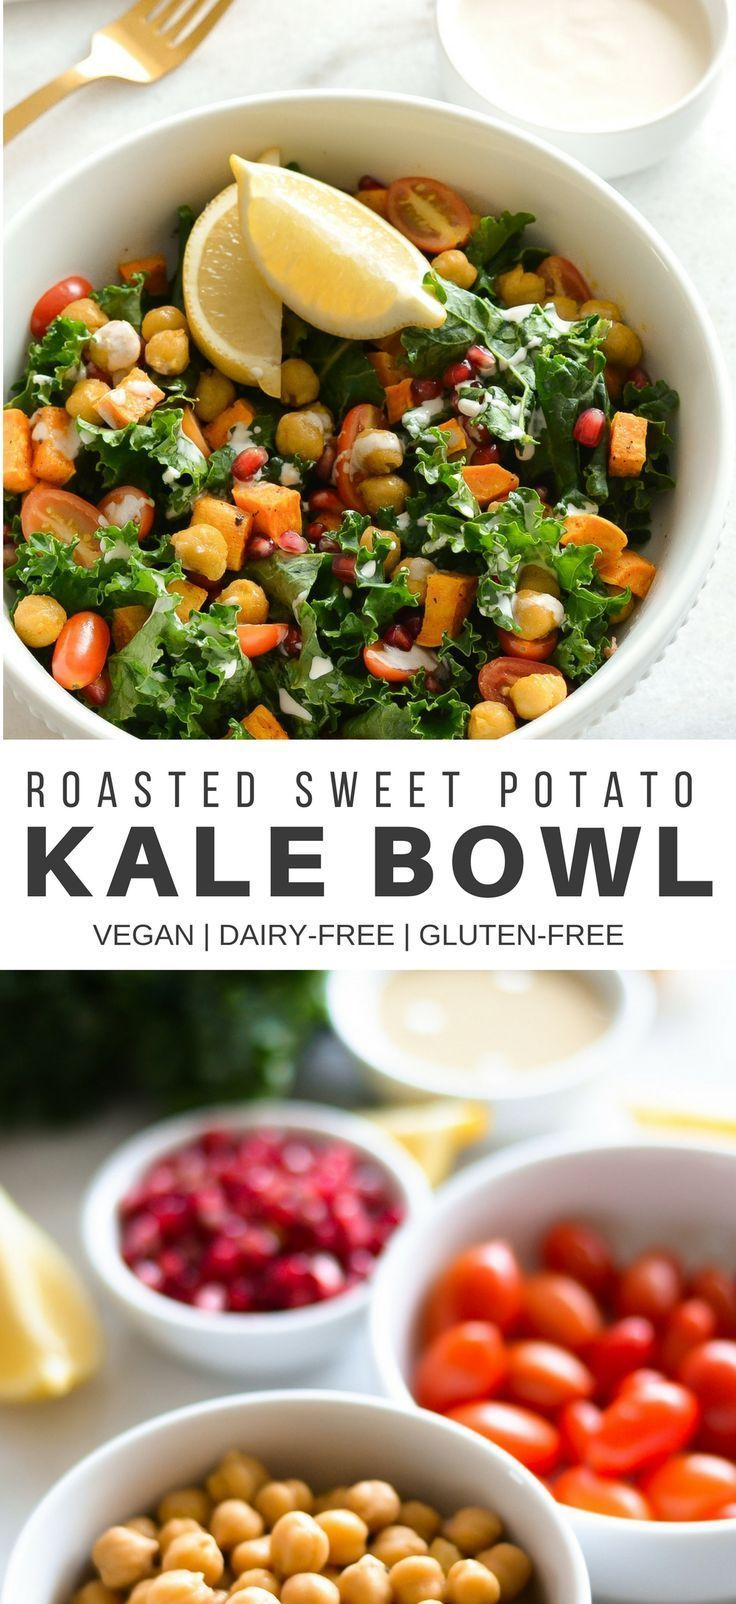 A classic, everyday bowl packed with flavor, fresh ingredients, and nutrition. Made with massaged kale, sauteed spicy chickpeas, savory roasted potatoes, tomatoes, pomegranate seeds, and a drizzle of lemon-tahini dressing, this is a great bowl to eat when